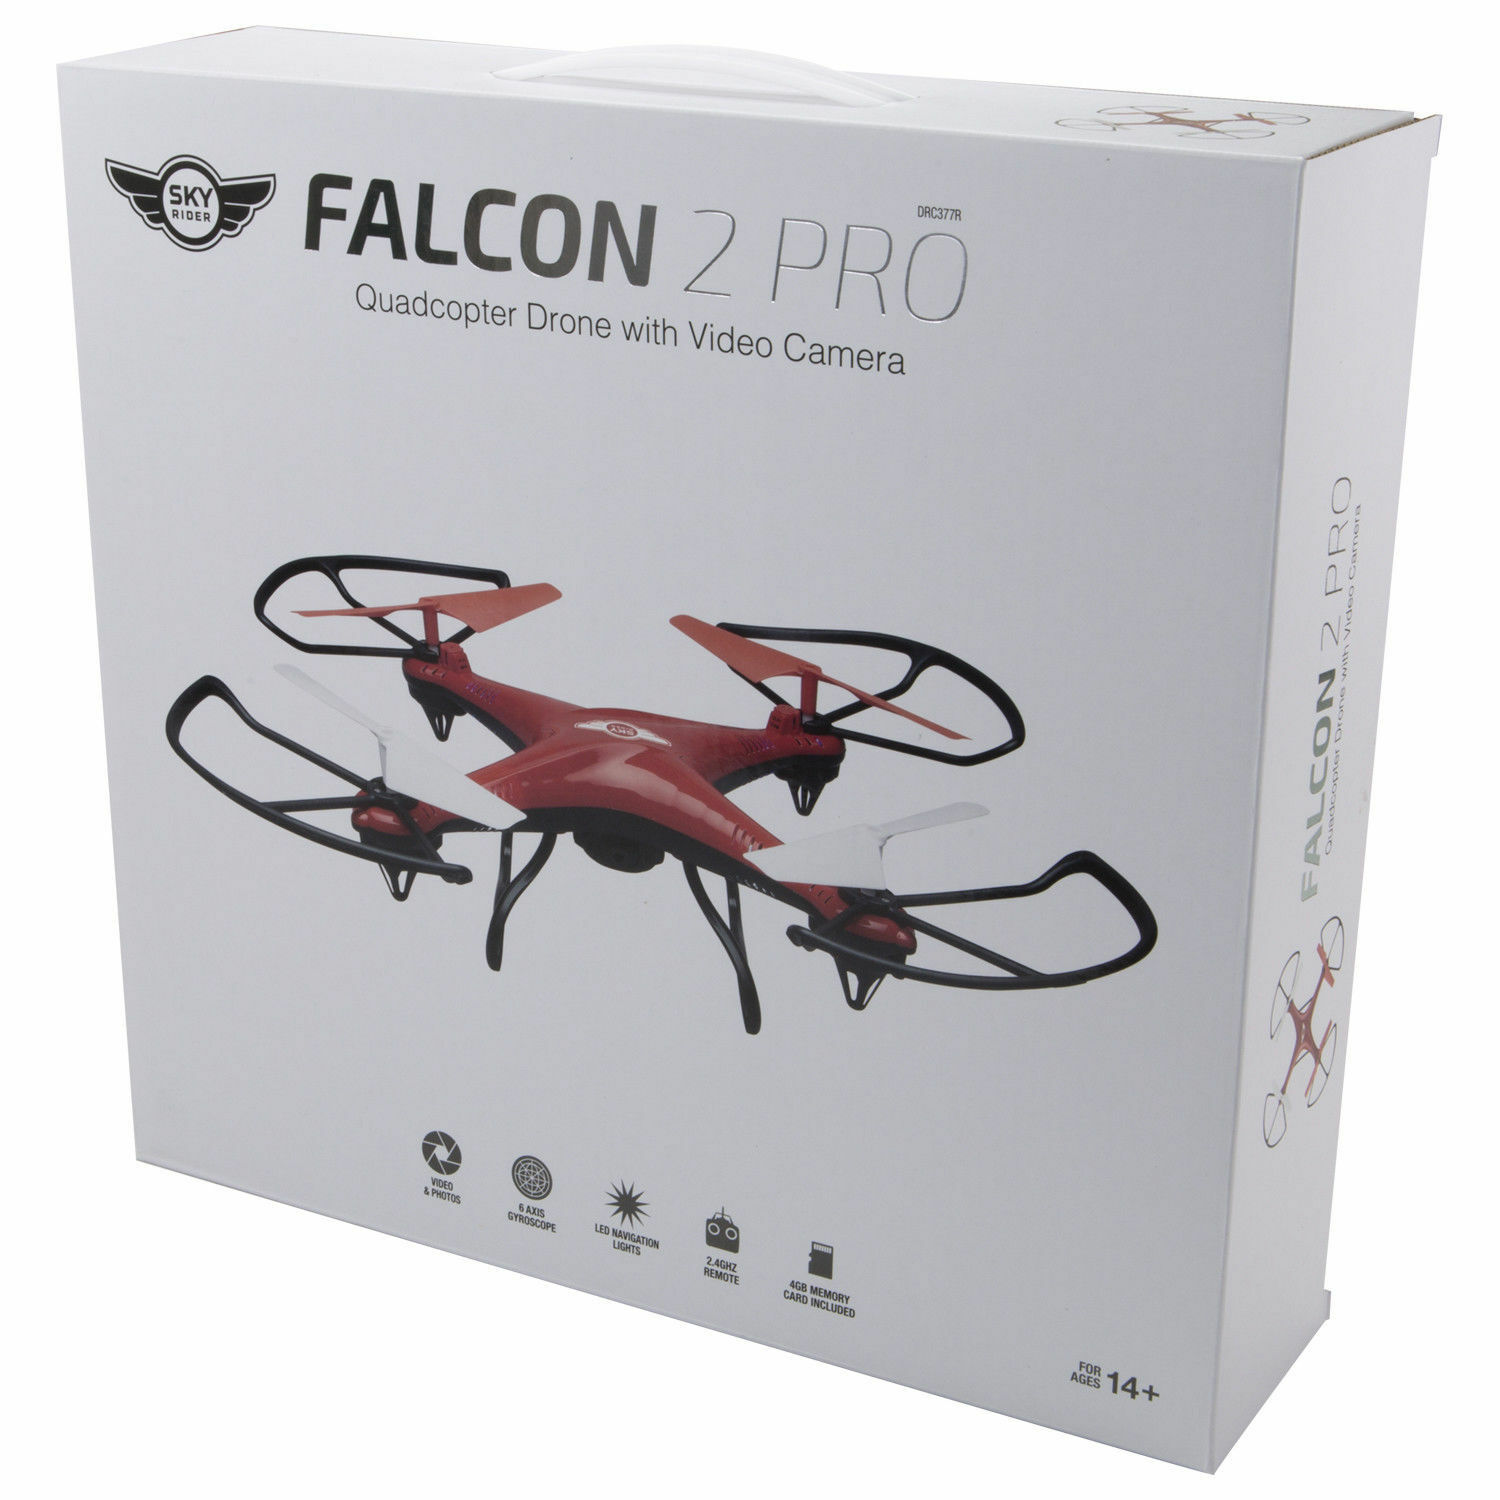 SET OF 2 Sky Rider Falcon 2 Pro Quadcopter Drone with Video Camera NEW